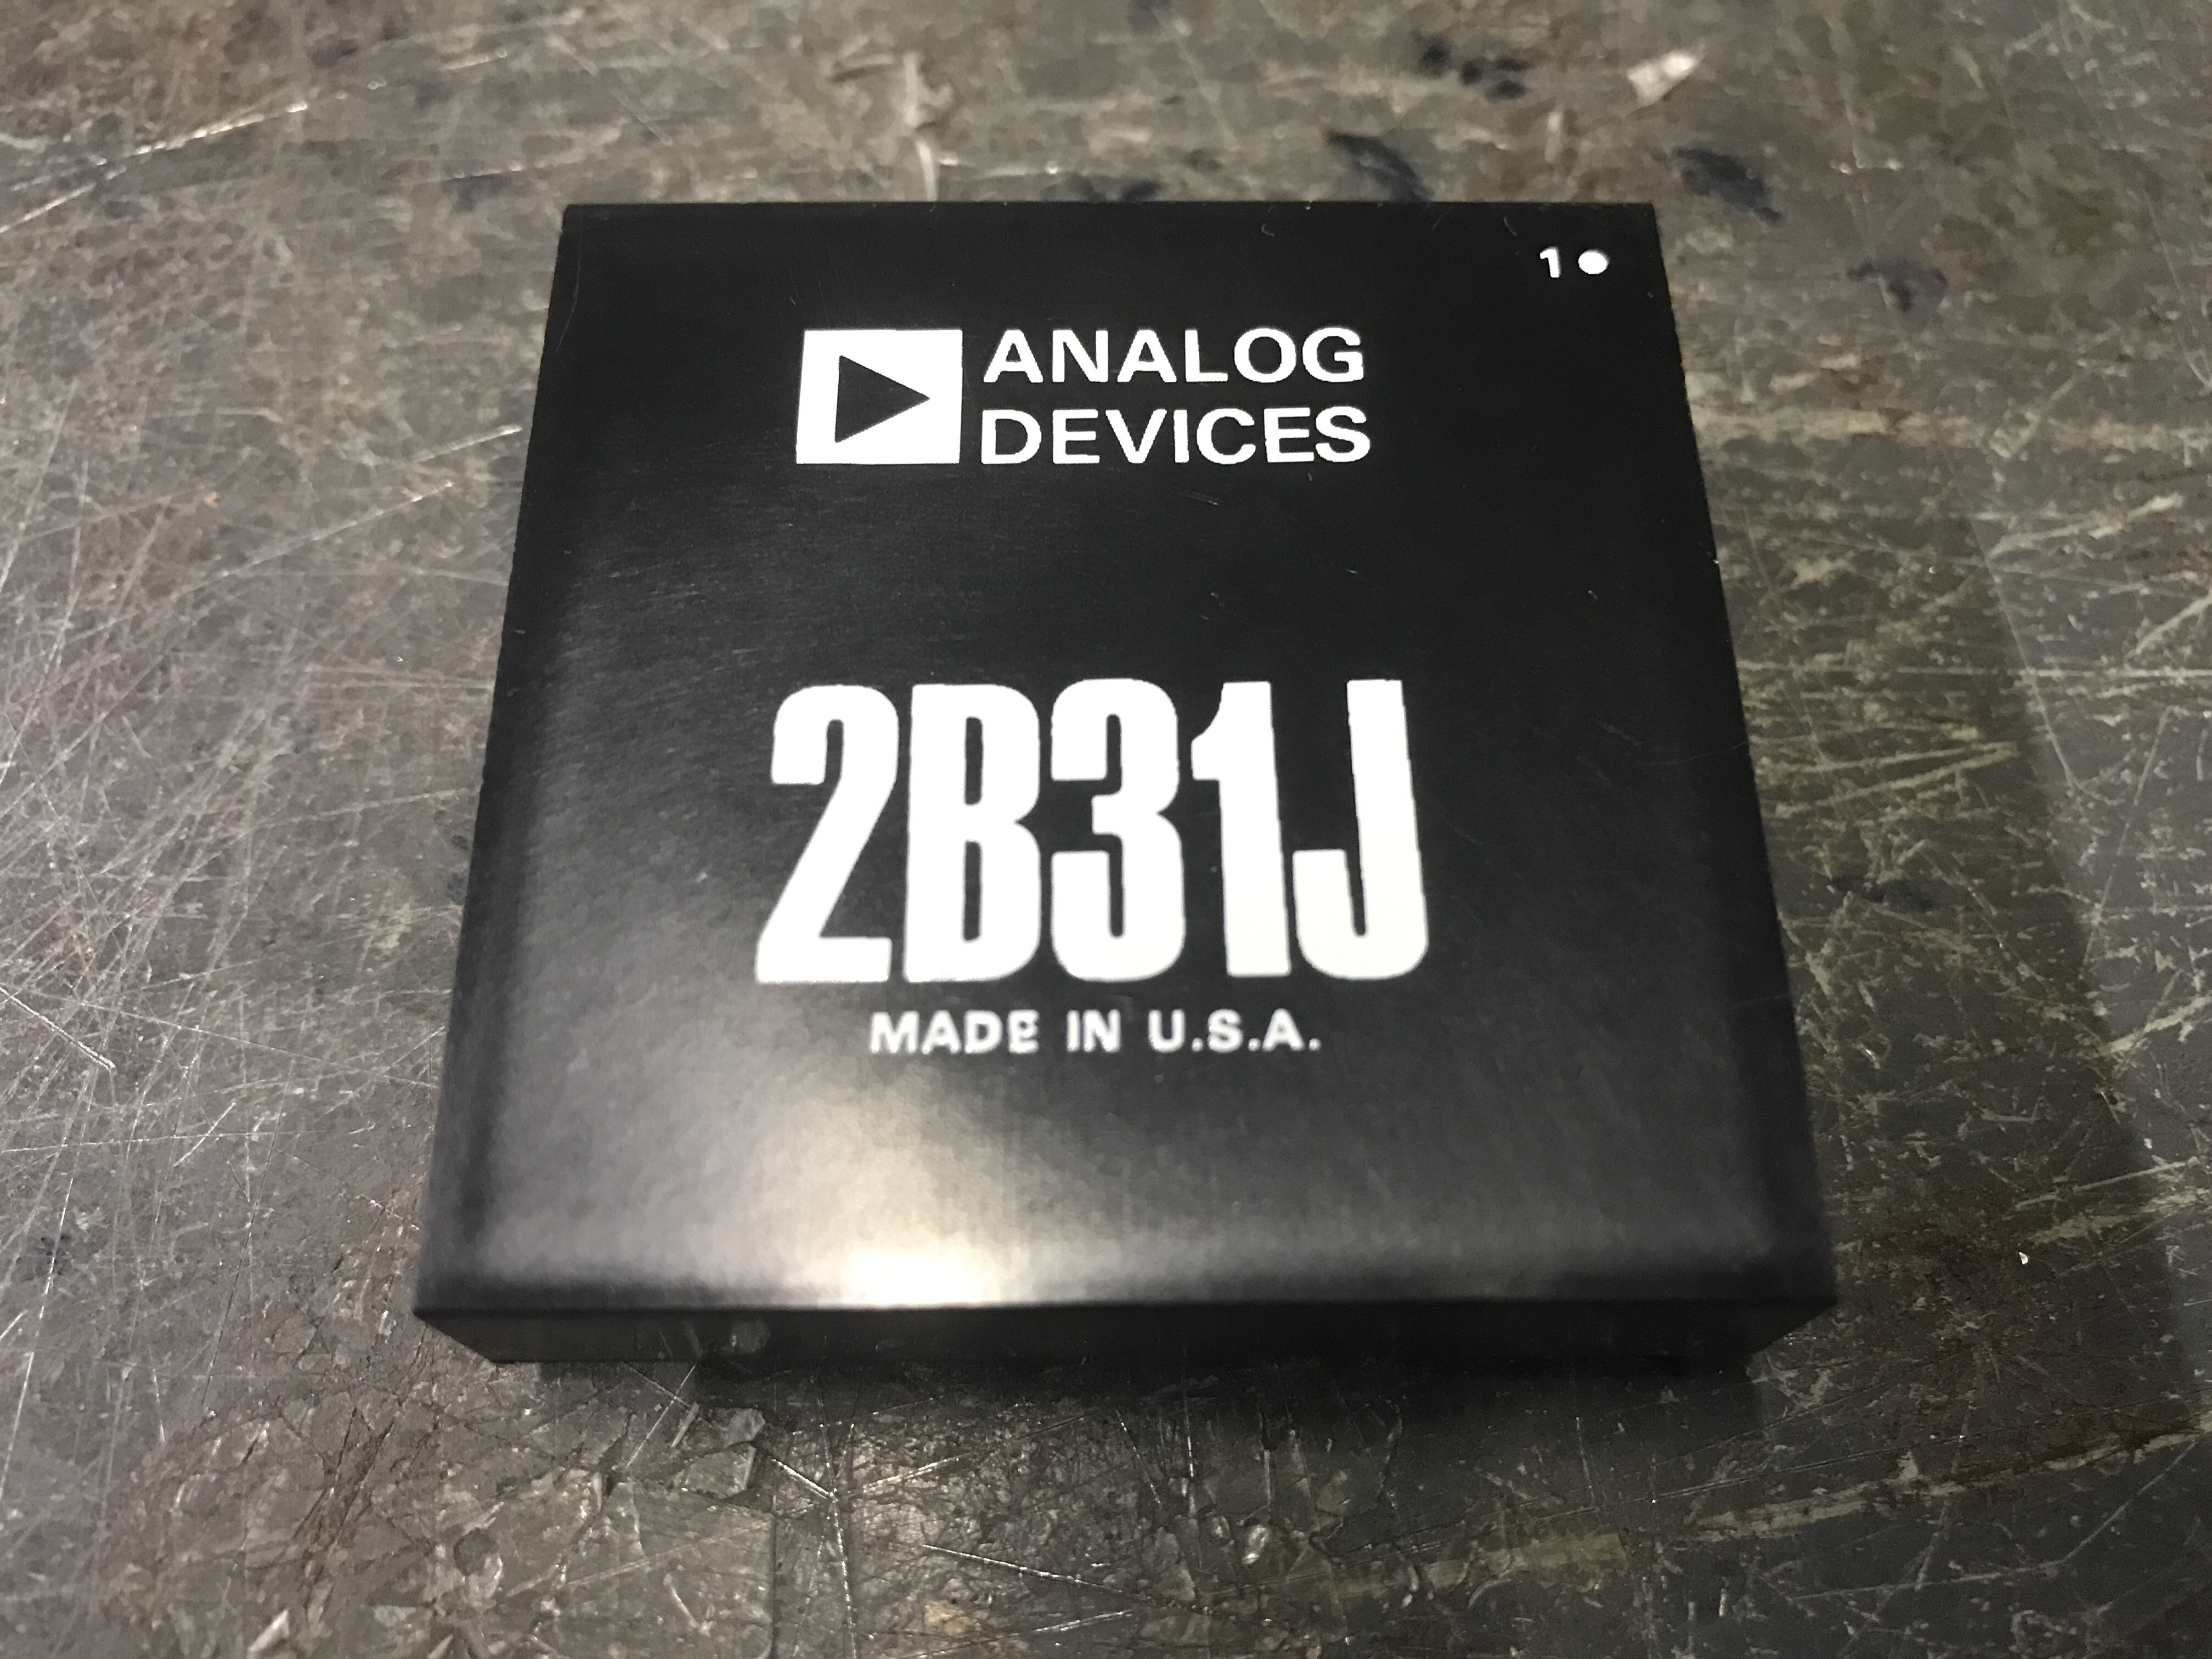 Analog Devices 2B31J Industrial Control System